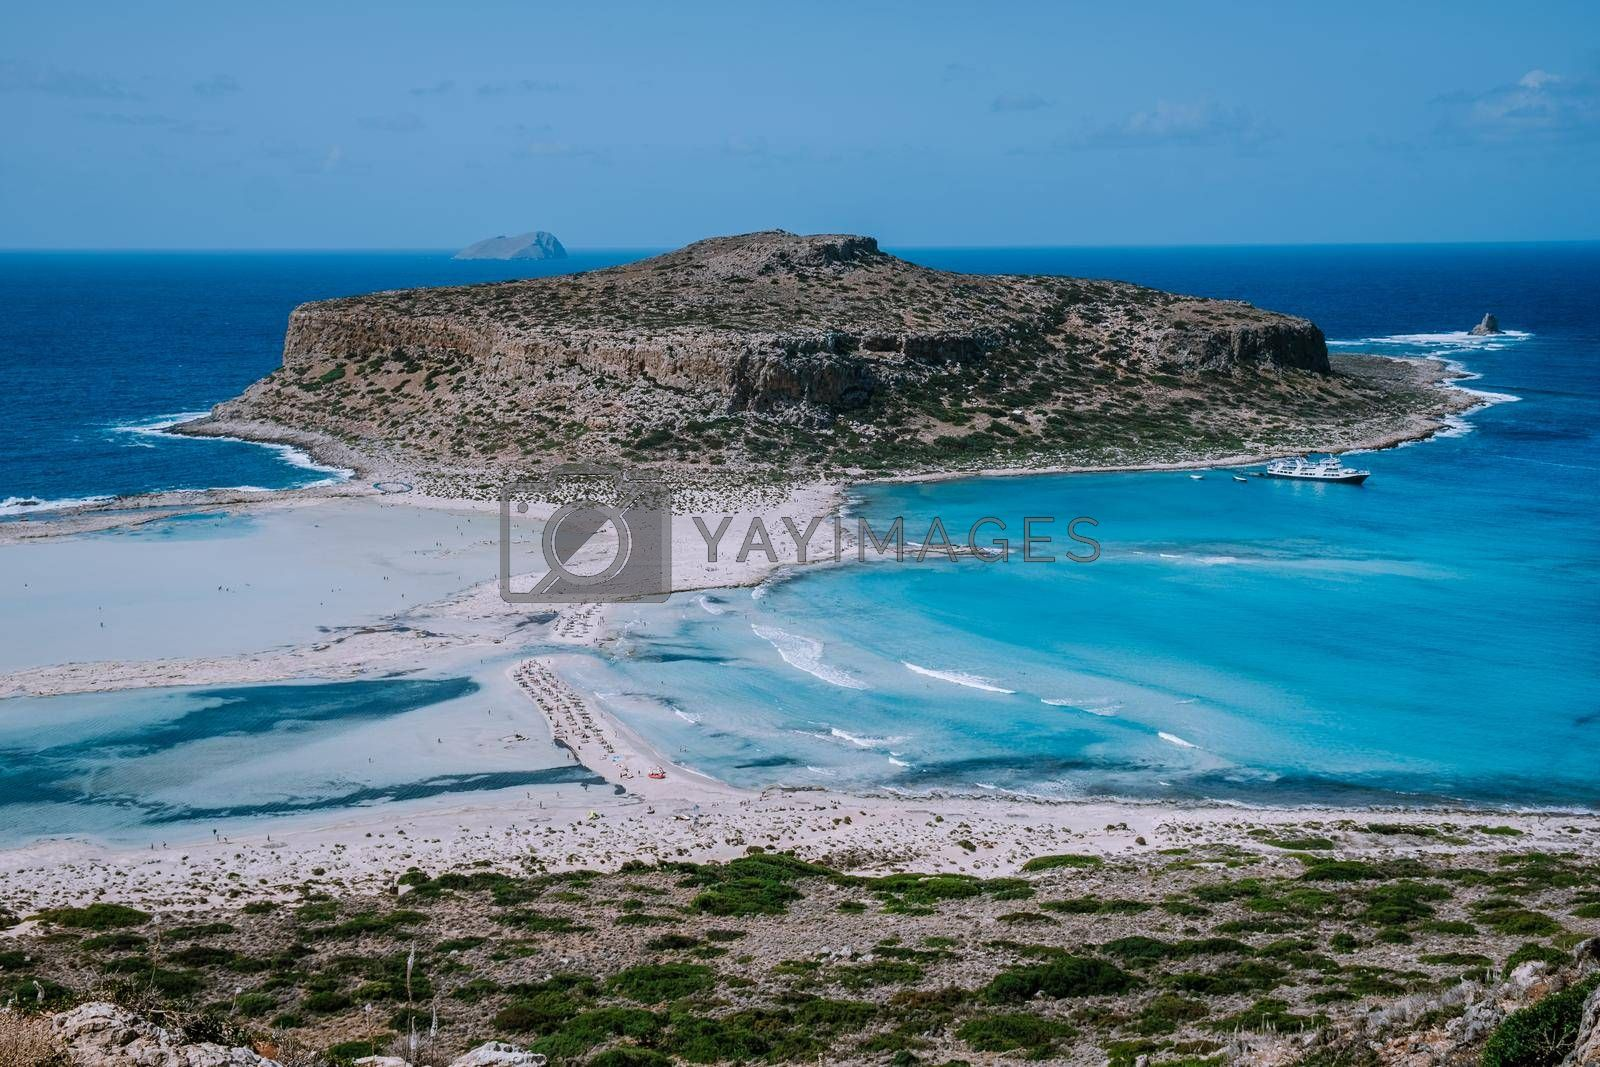 Balos Beach Cret Greece, Balos beach is on of the most beautiful beaches in Greece at the Greek Island Europe